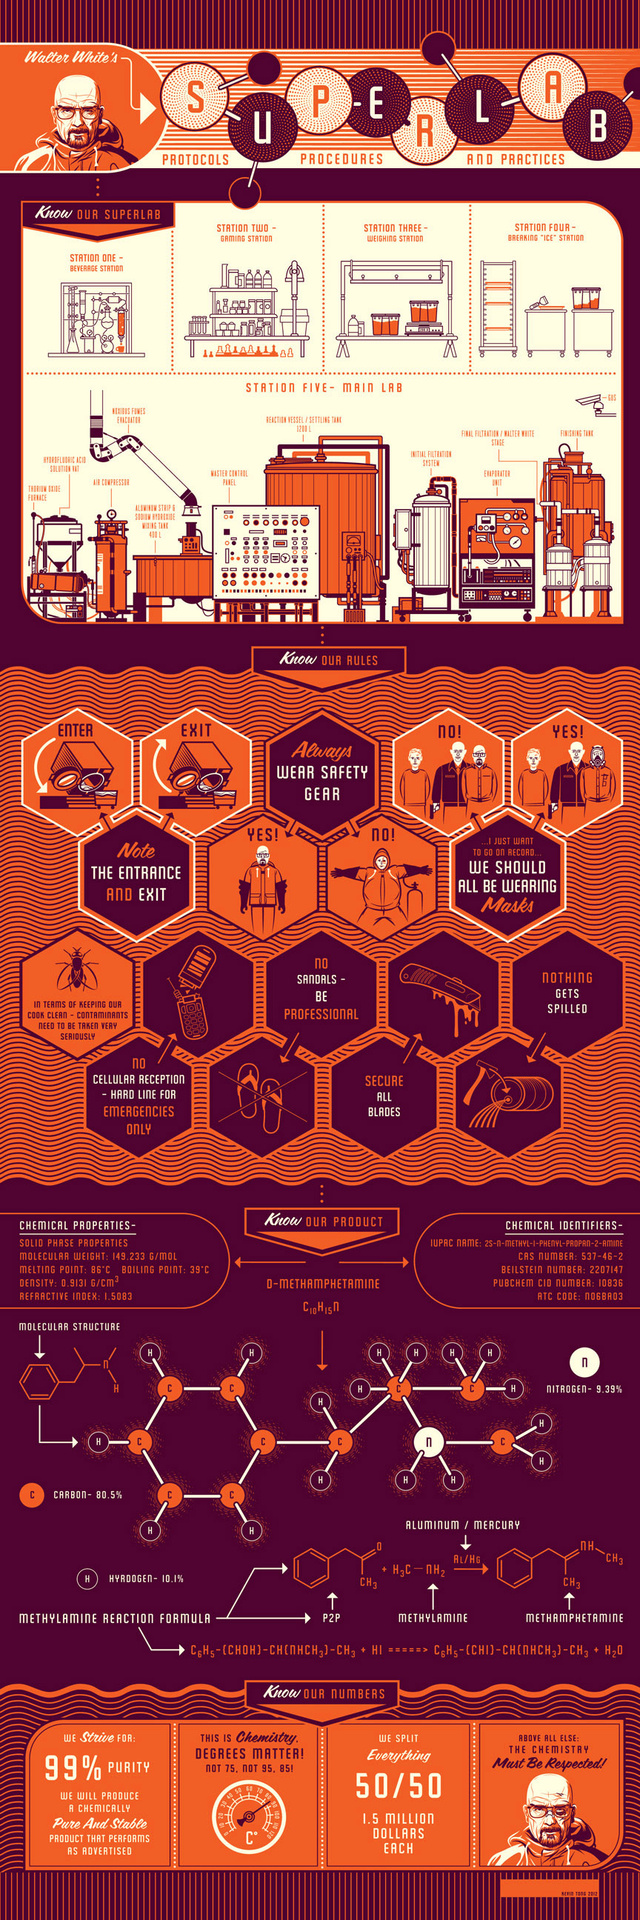 Learn the rules of Walter White's superlab with this Breaking Bad poster